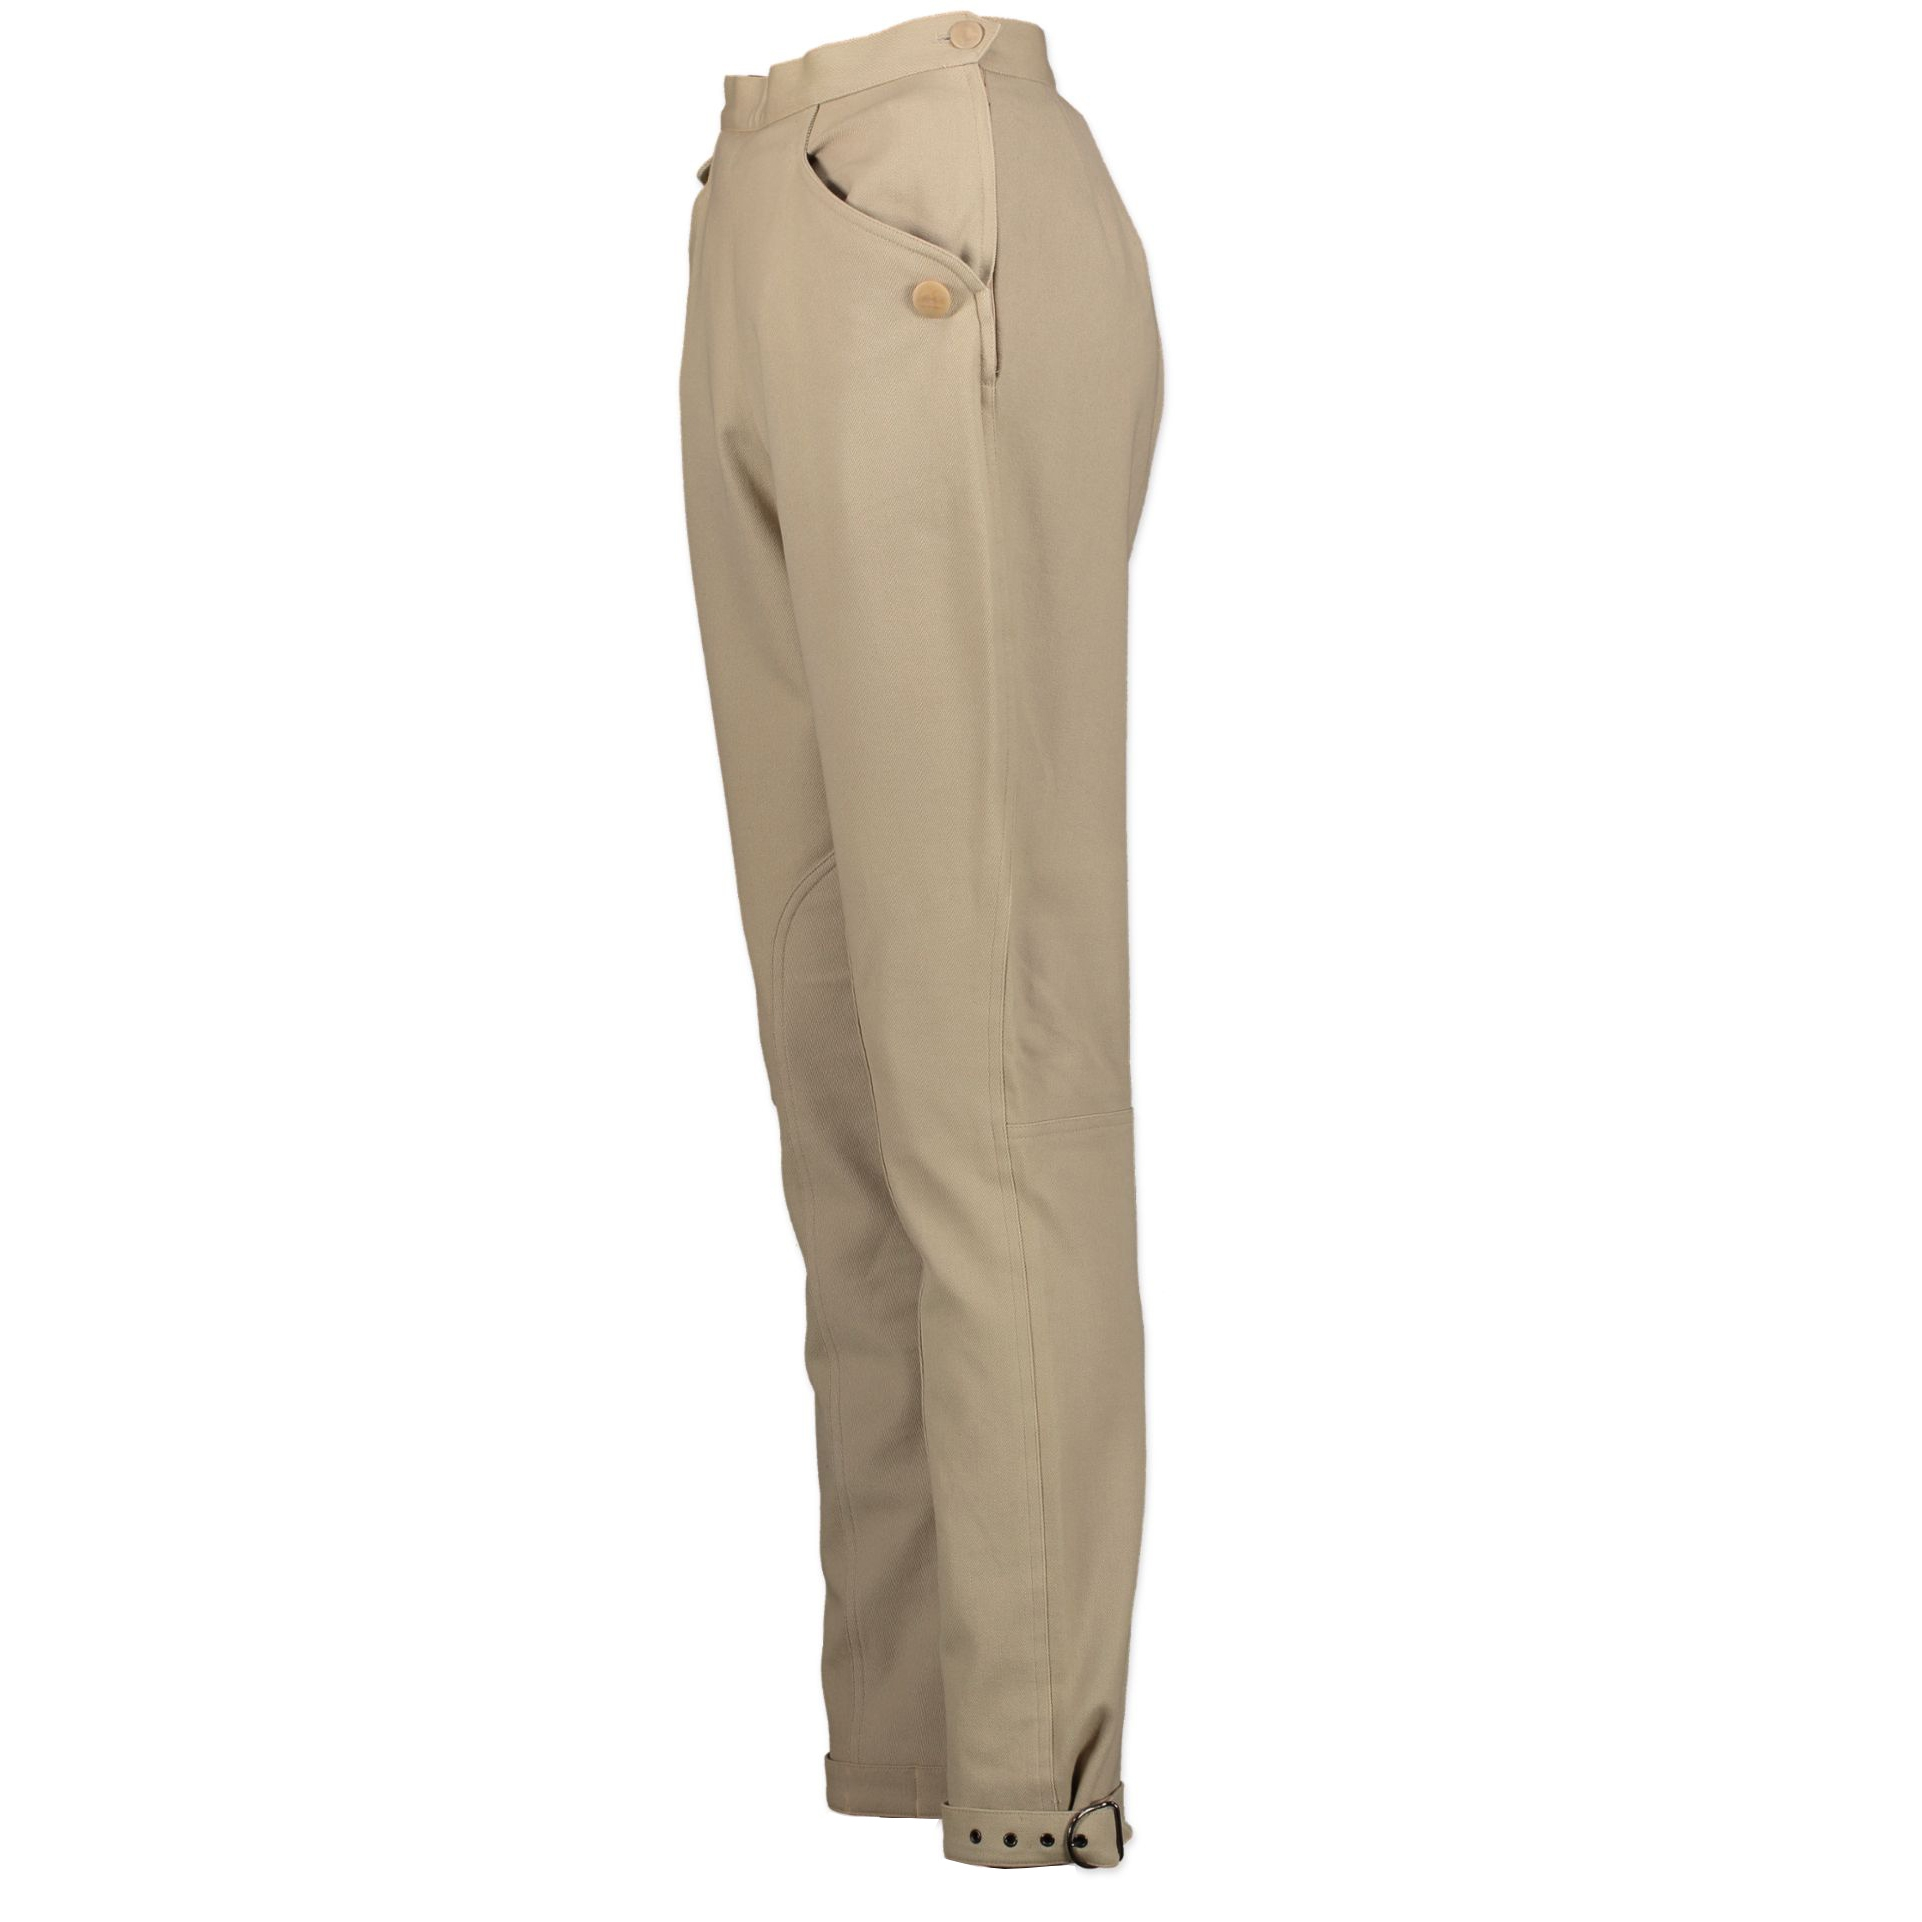 Hermes Beige Horse Riding Pants - Size 38